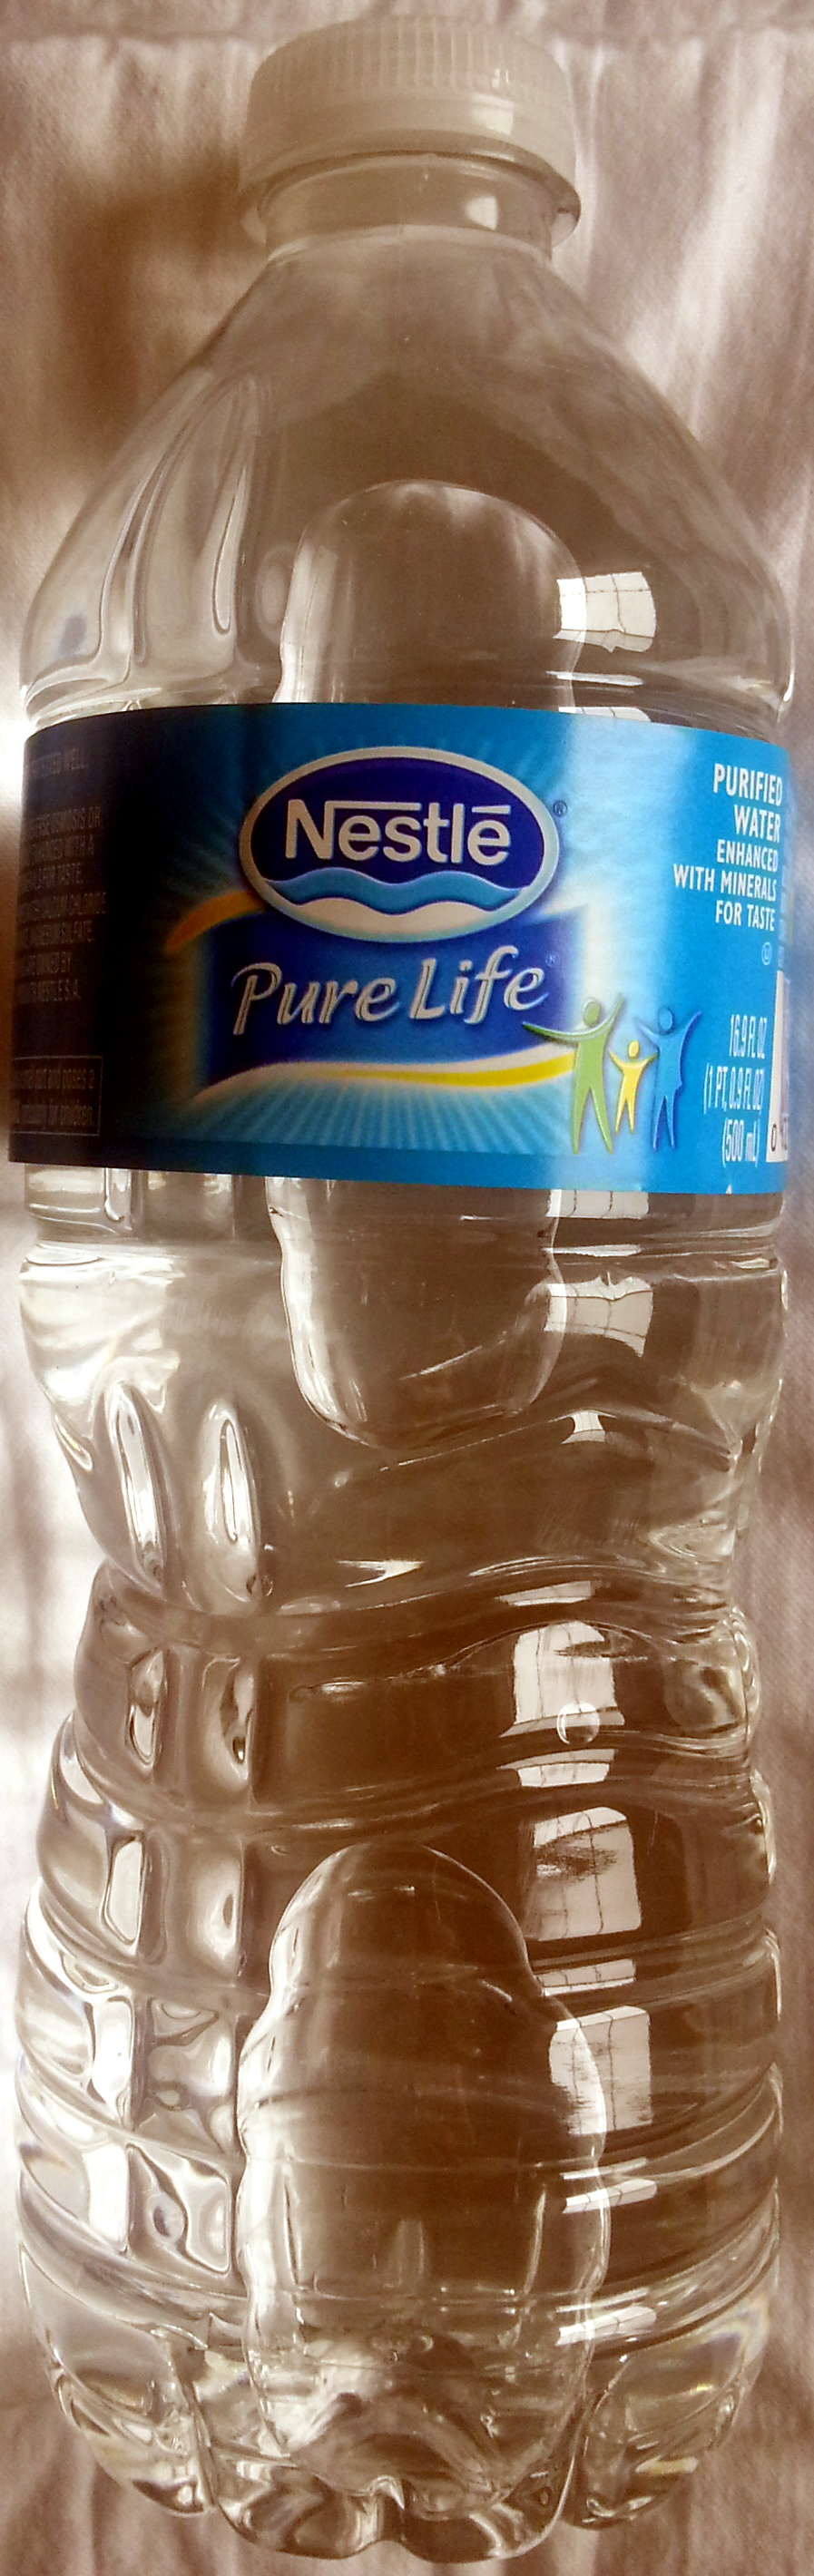 Pure Life - Product